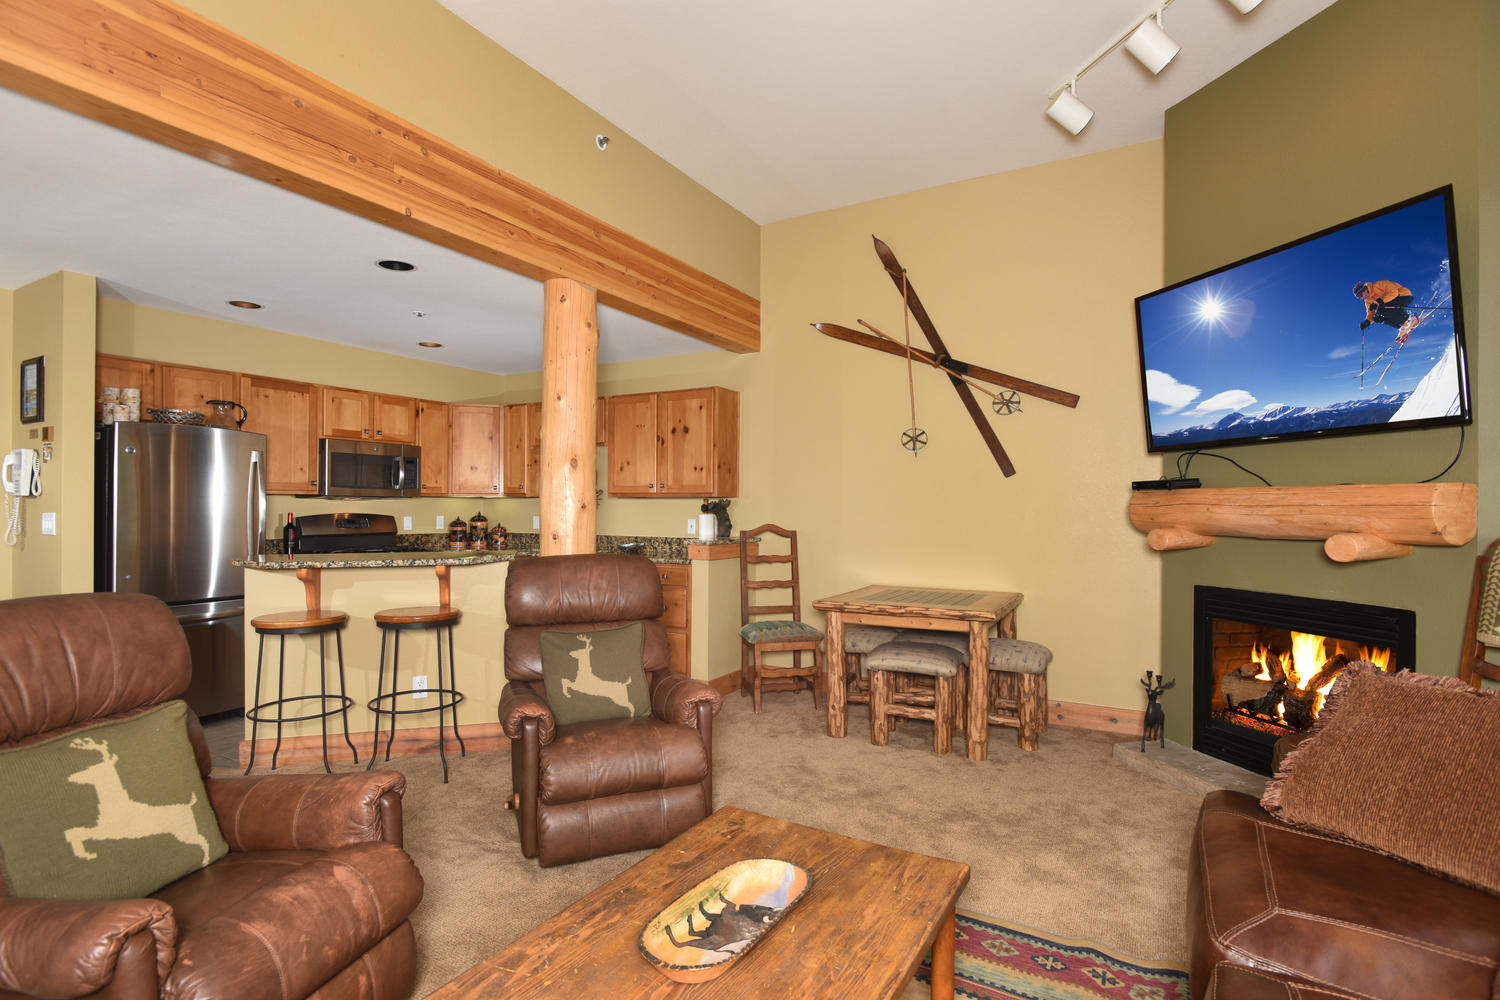 Condominium for Sale at Trappers Crossing Condo 28 Trappers Crossing #8761 Keystone, Colorado, 80435 United States